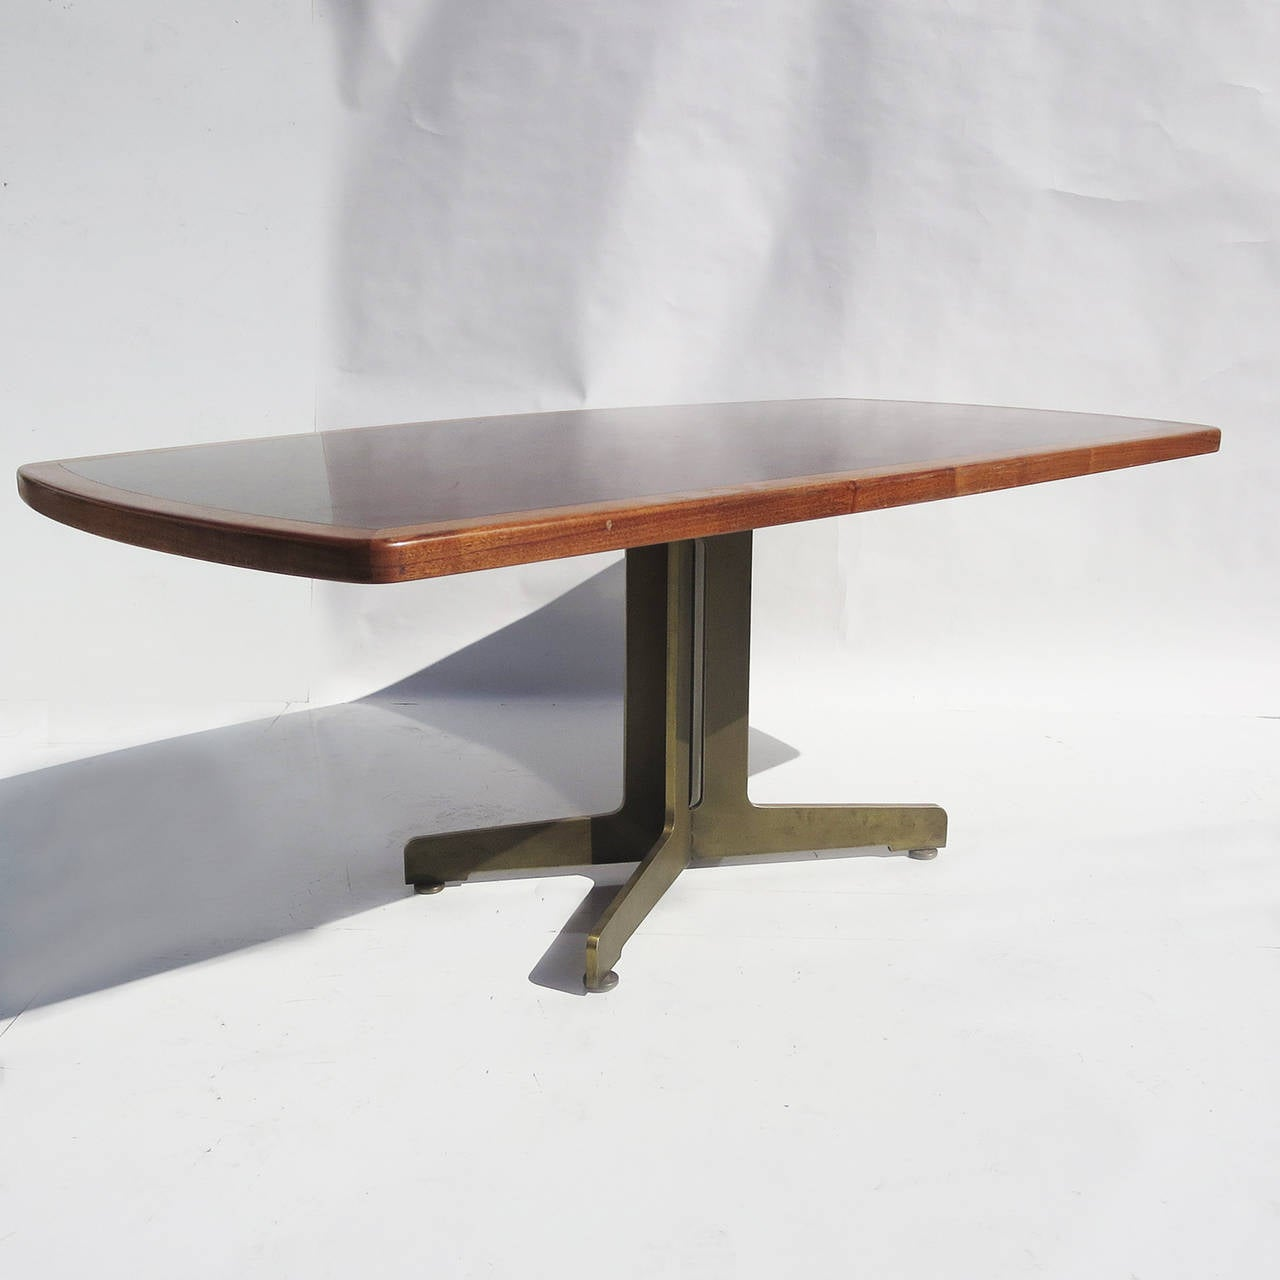 Walnut bronze and acid etched copper dining table by